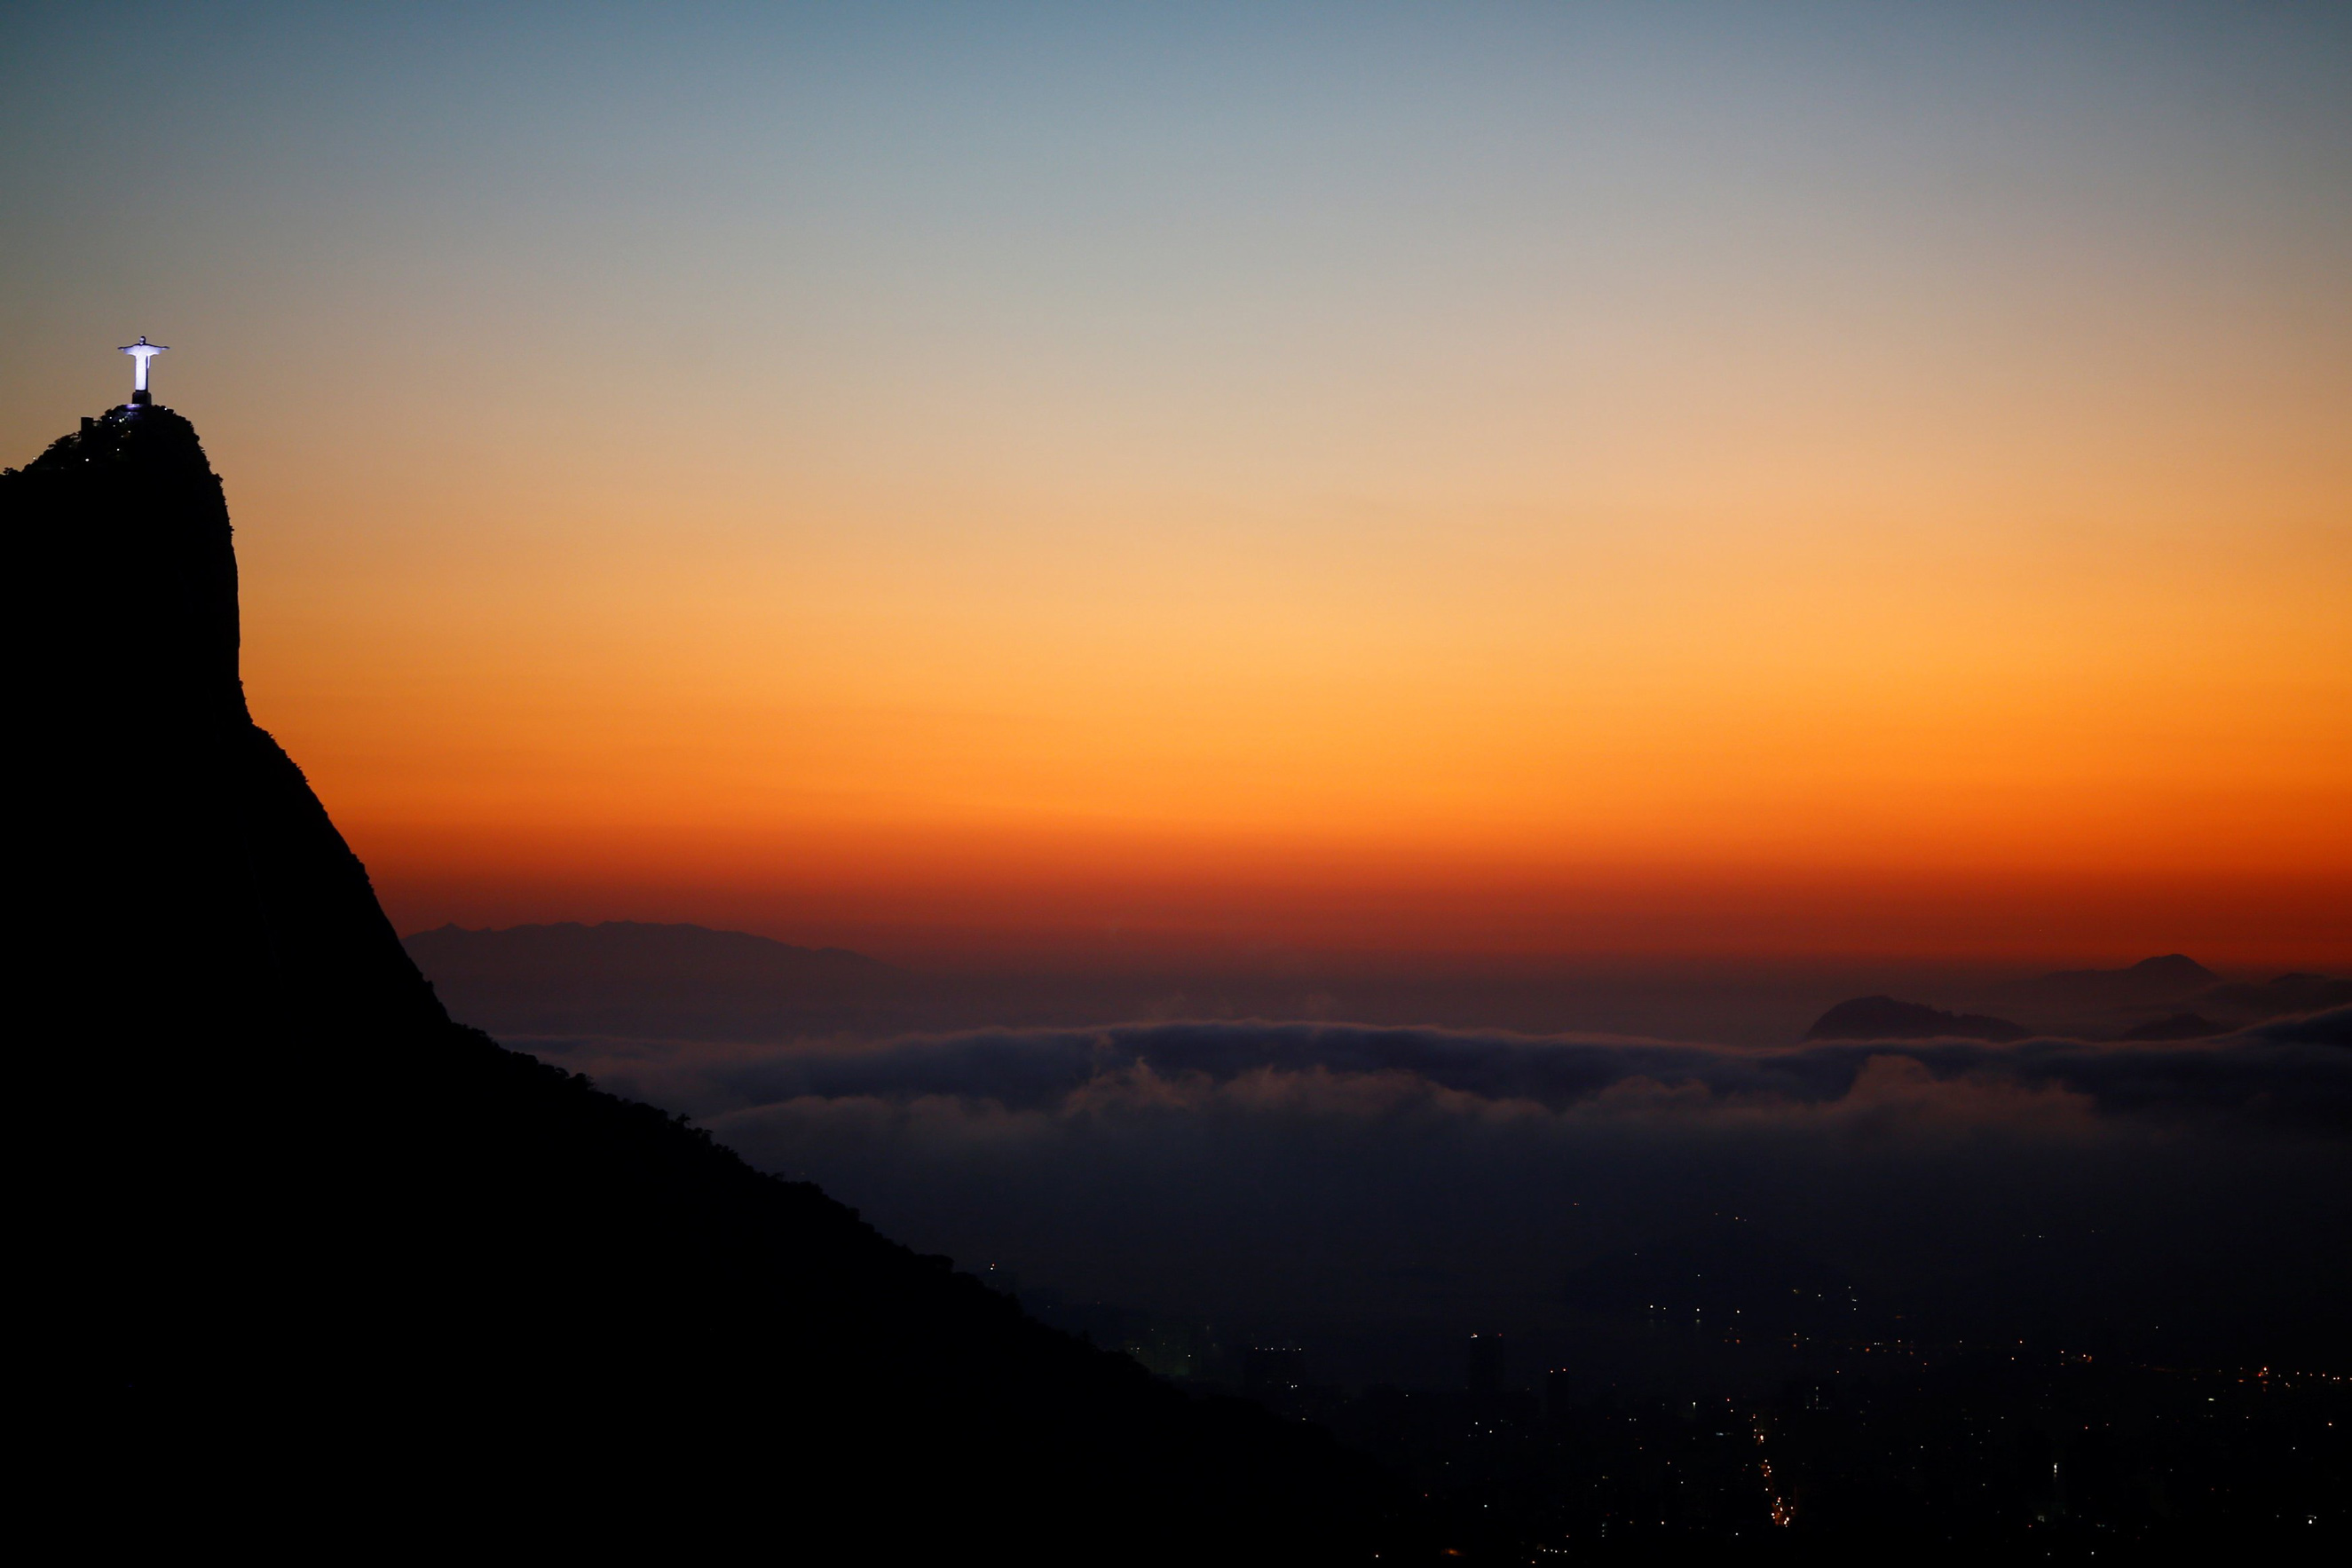 Christ the Redeemer is seen from the Vista Chinesa (Chinese View) during sunrise in Rio de Janeiro on May 4, 2016.